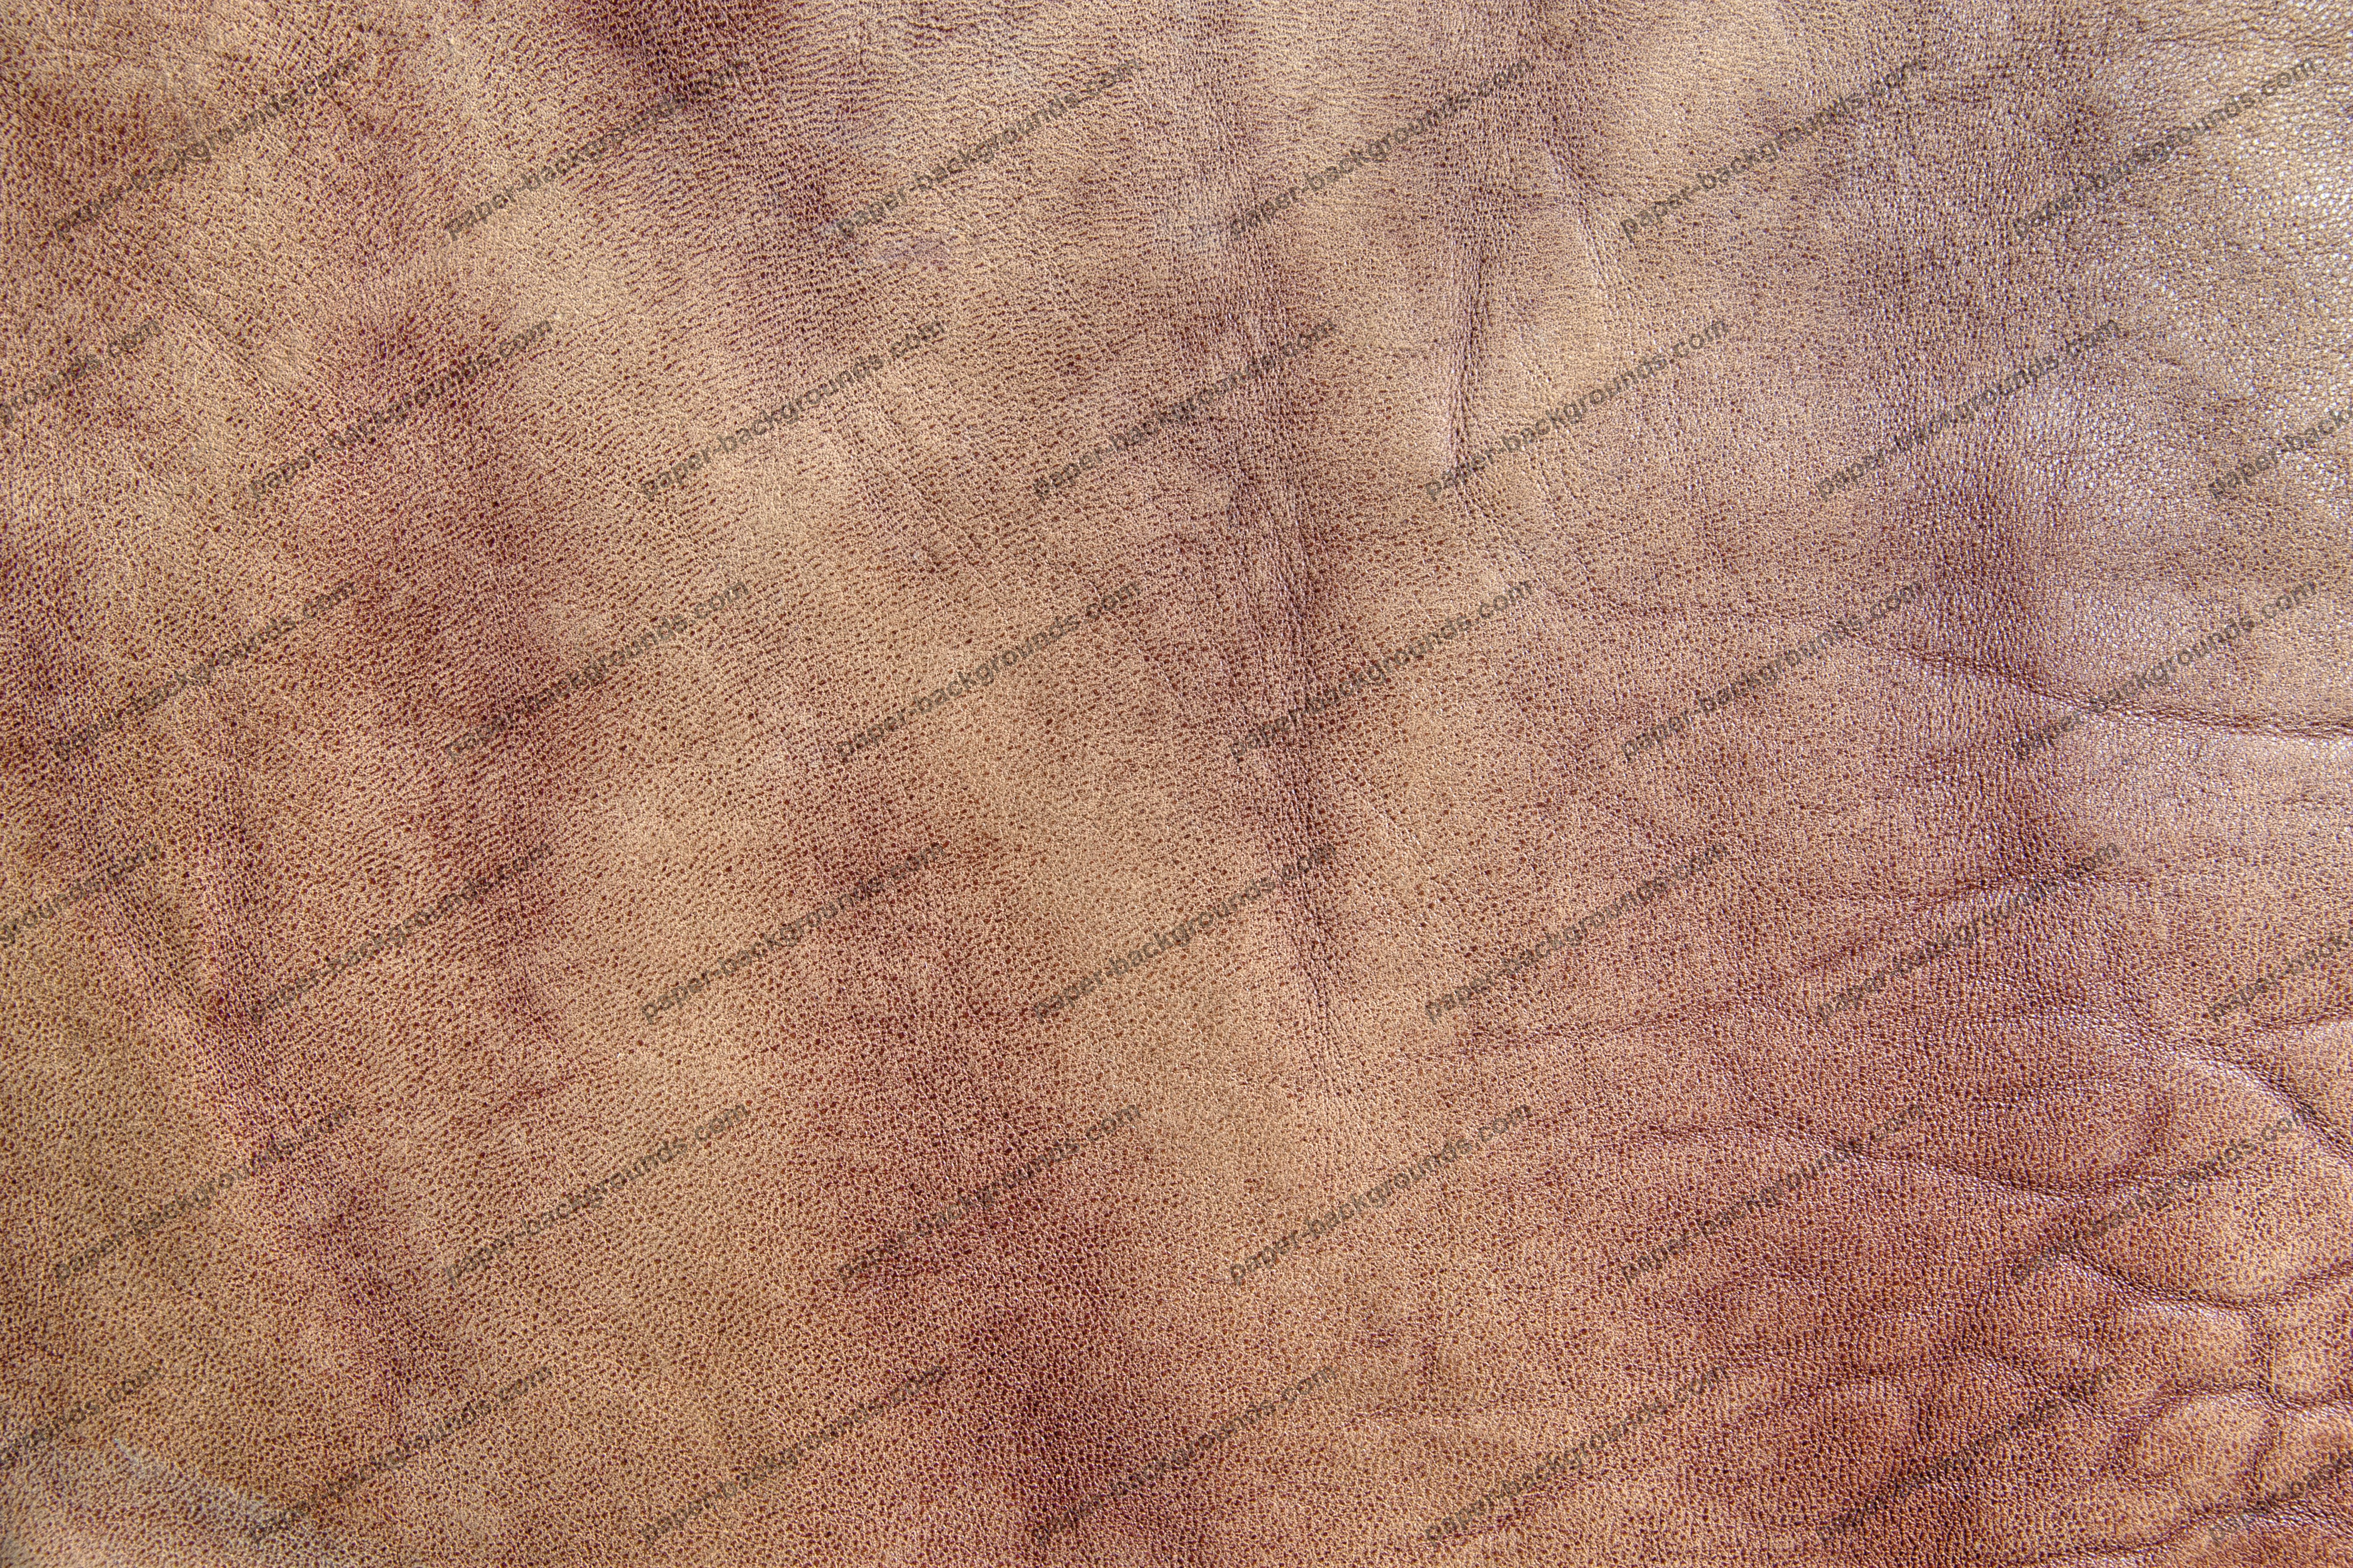 Light Brown Vintage Leather Texture High Resolution